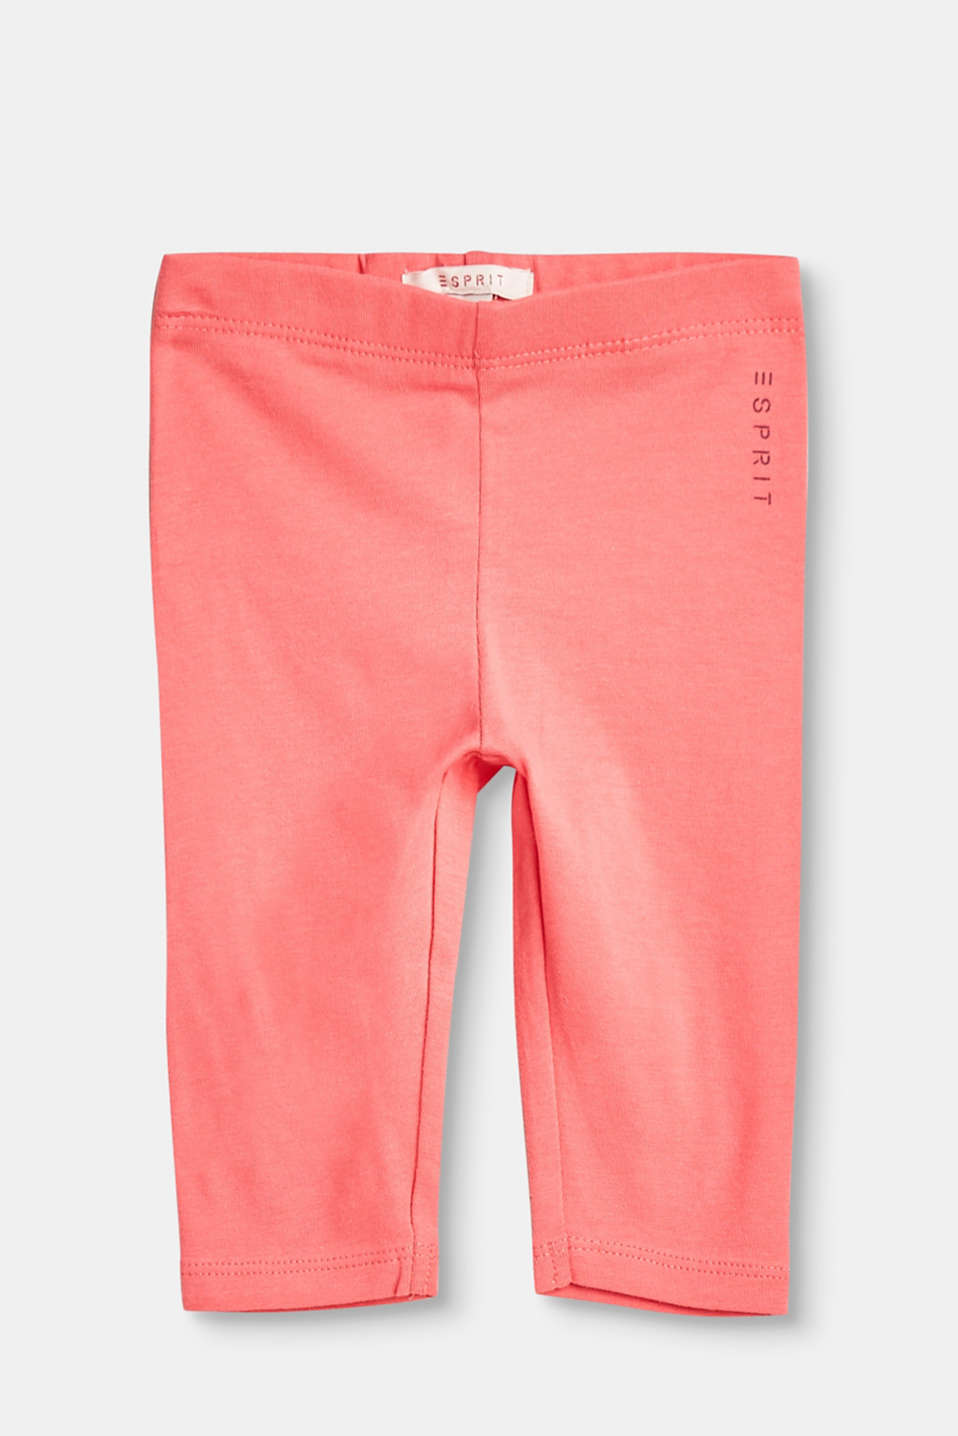 Esprit - Soft basic leggings in stretch cotton